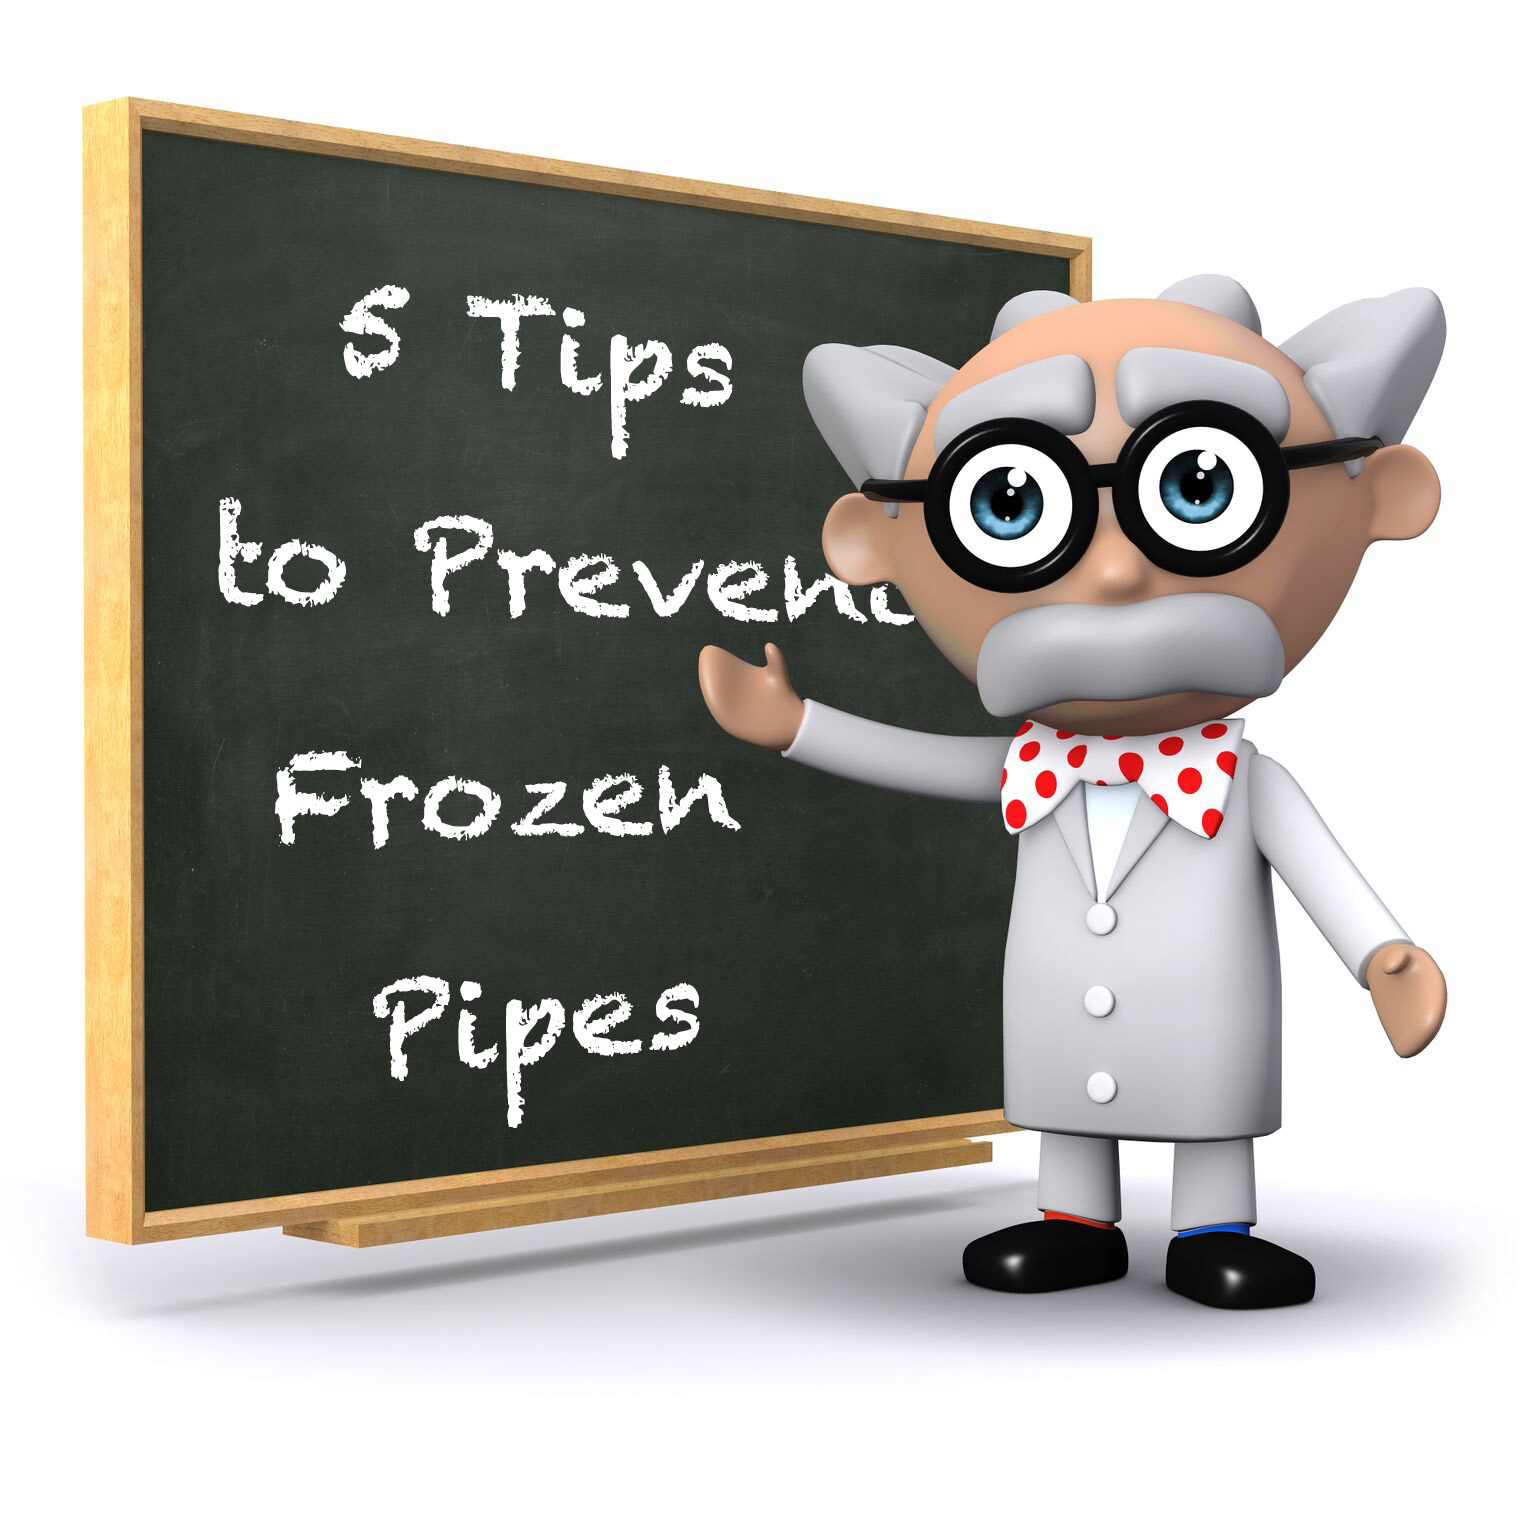 Steps to prvent frozing